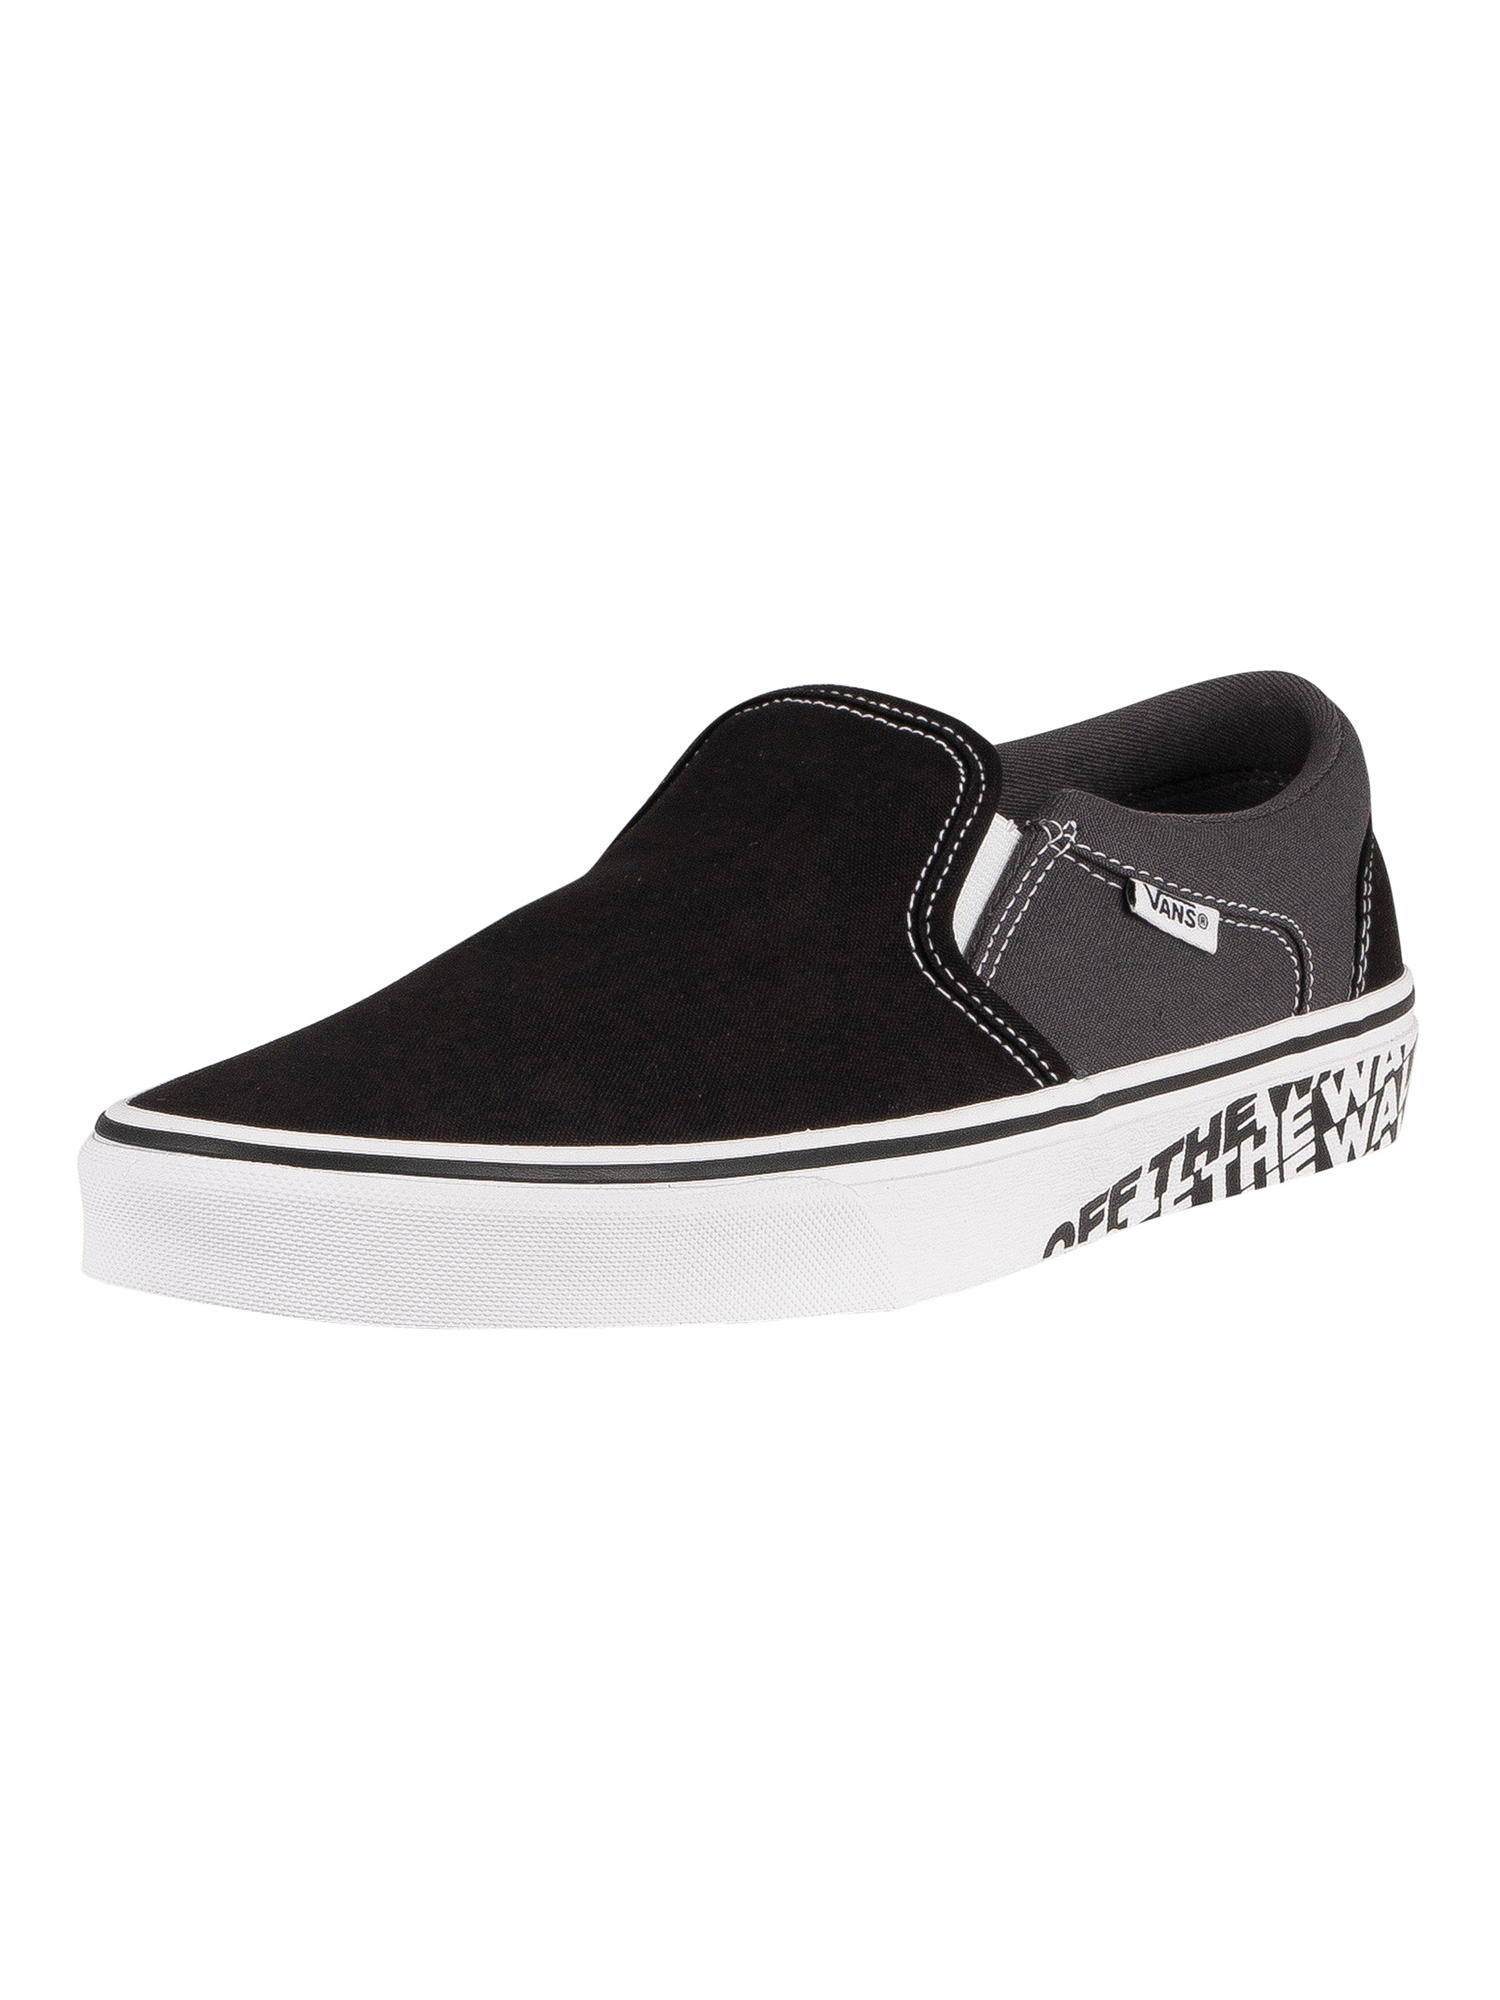 Asher Sidewall Slip On Trainers